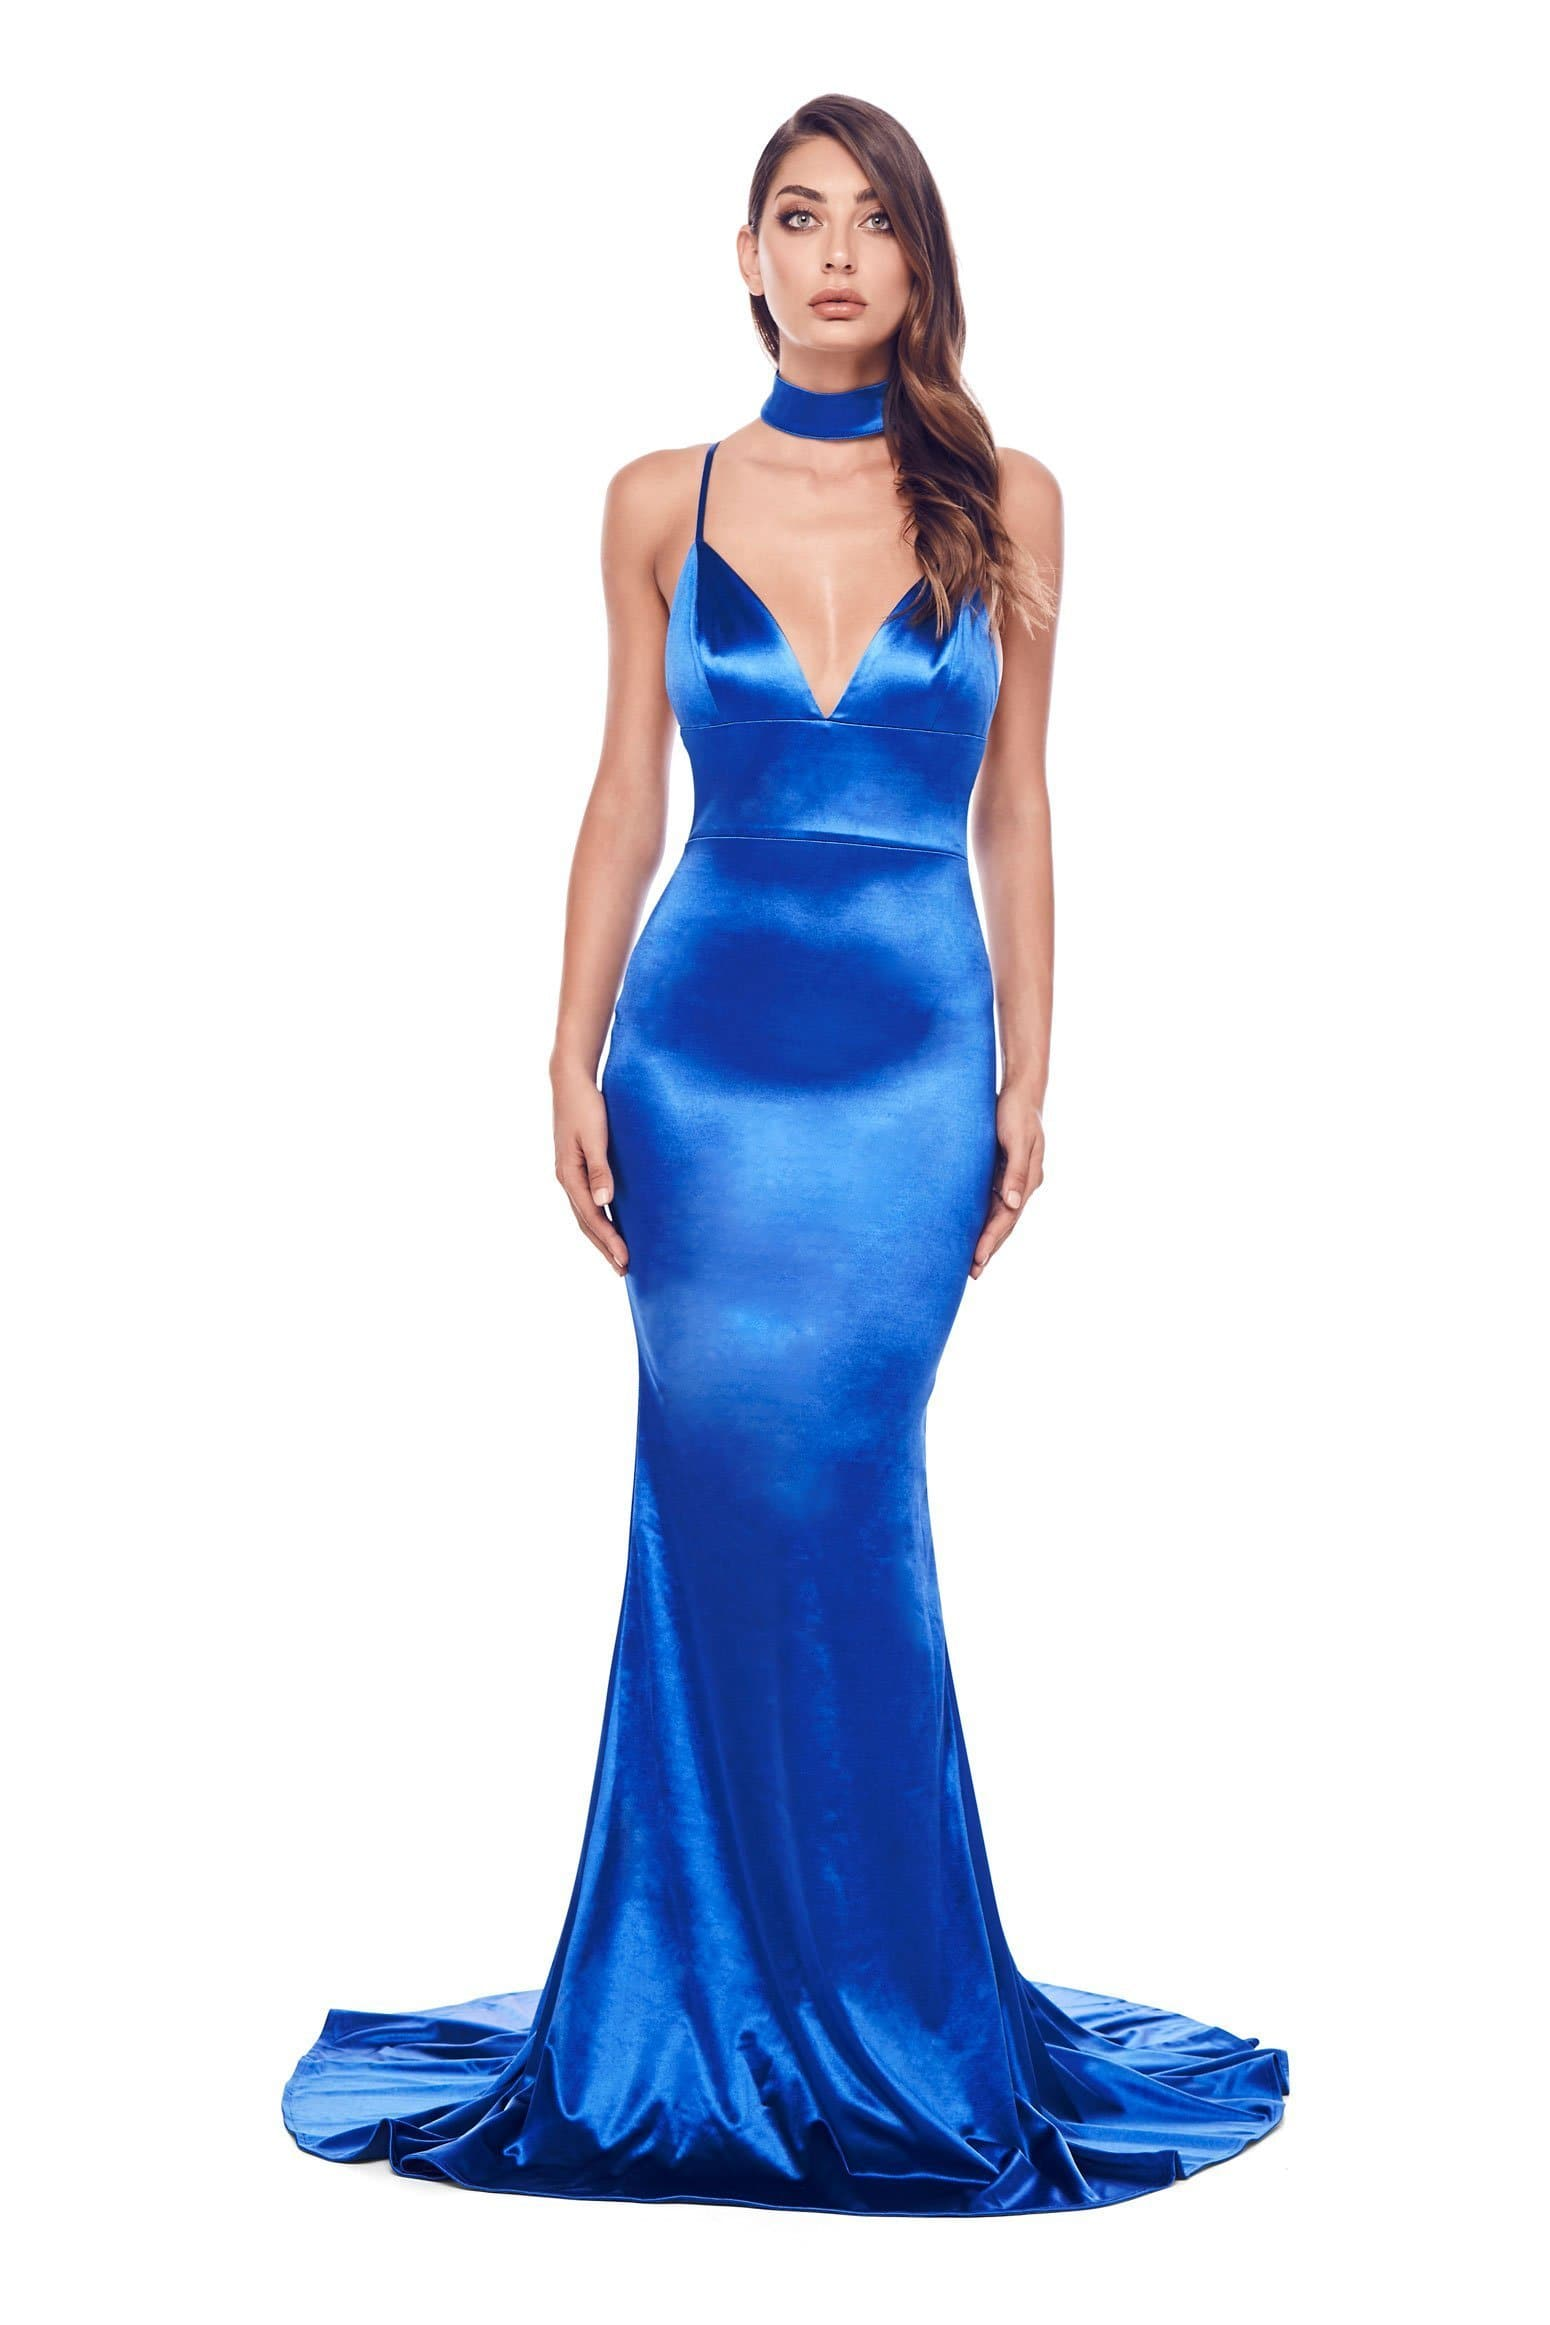 Amina - Royal Blue Satin Gown with V Neck and Lace Up Back